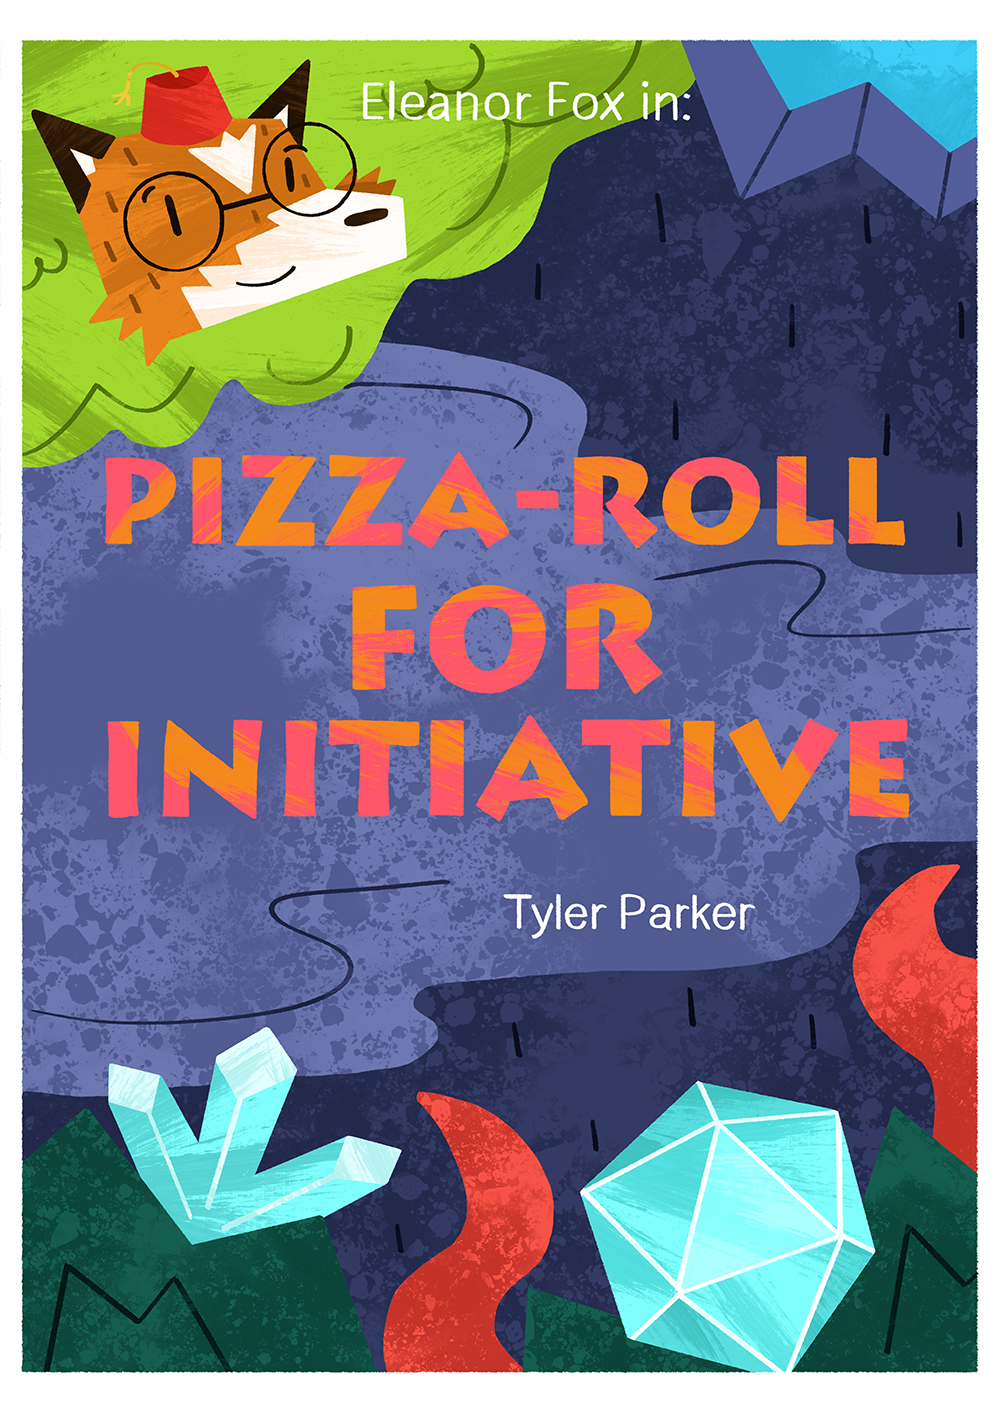 pizzaroll-cover-LR.jpg